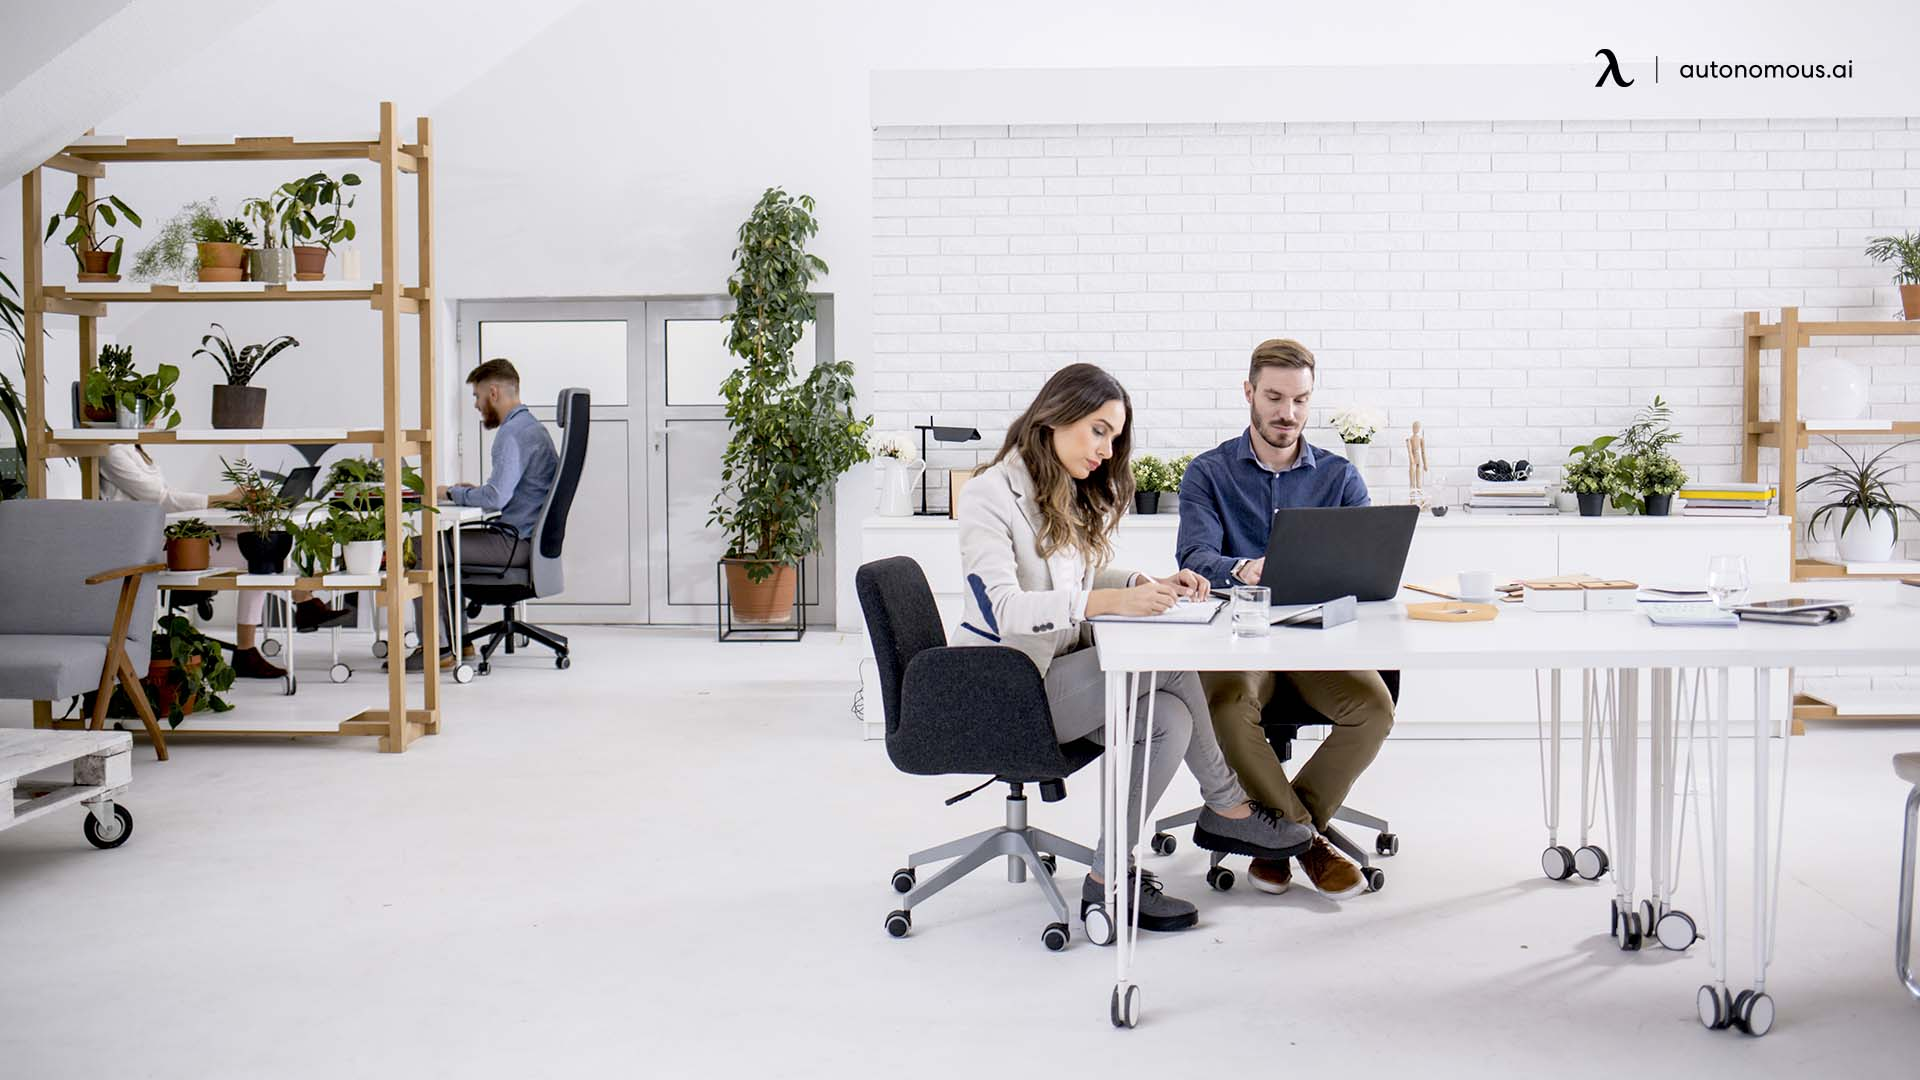 What Can an Employee Do to Adapt to a New Work Schedule